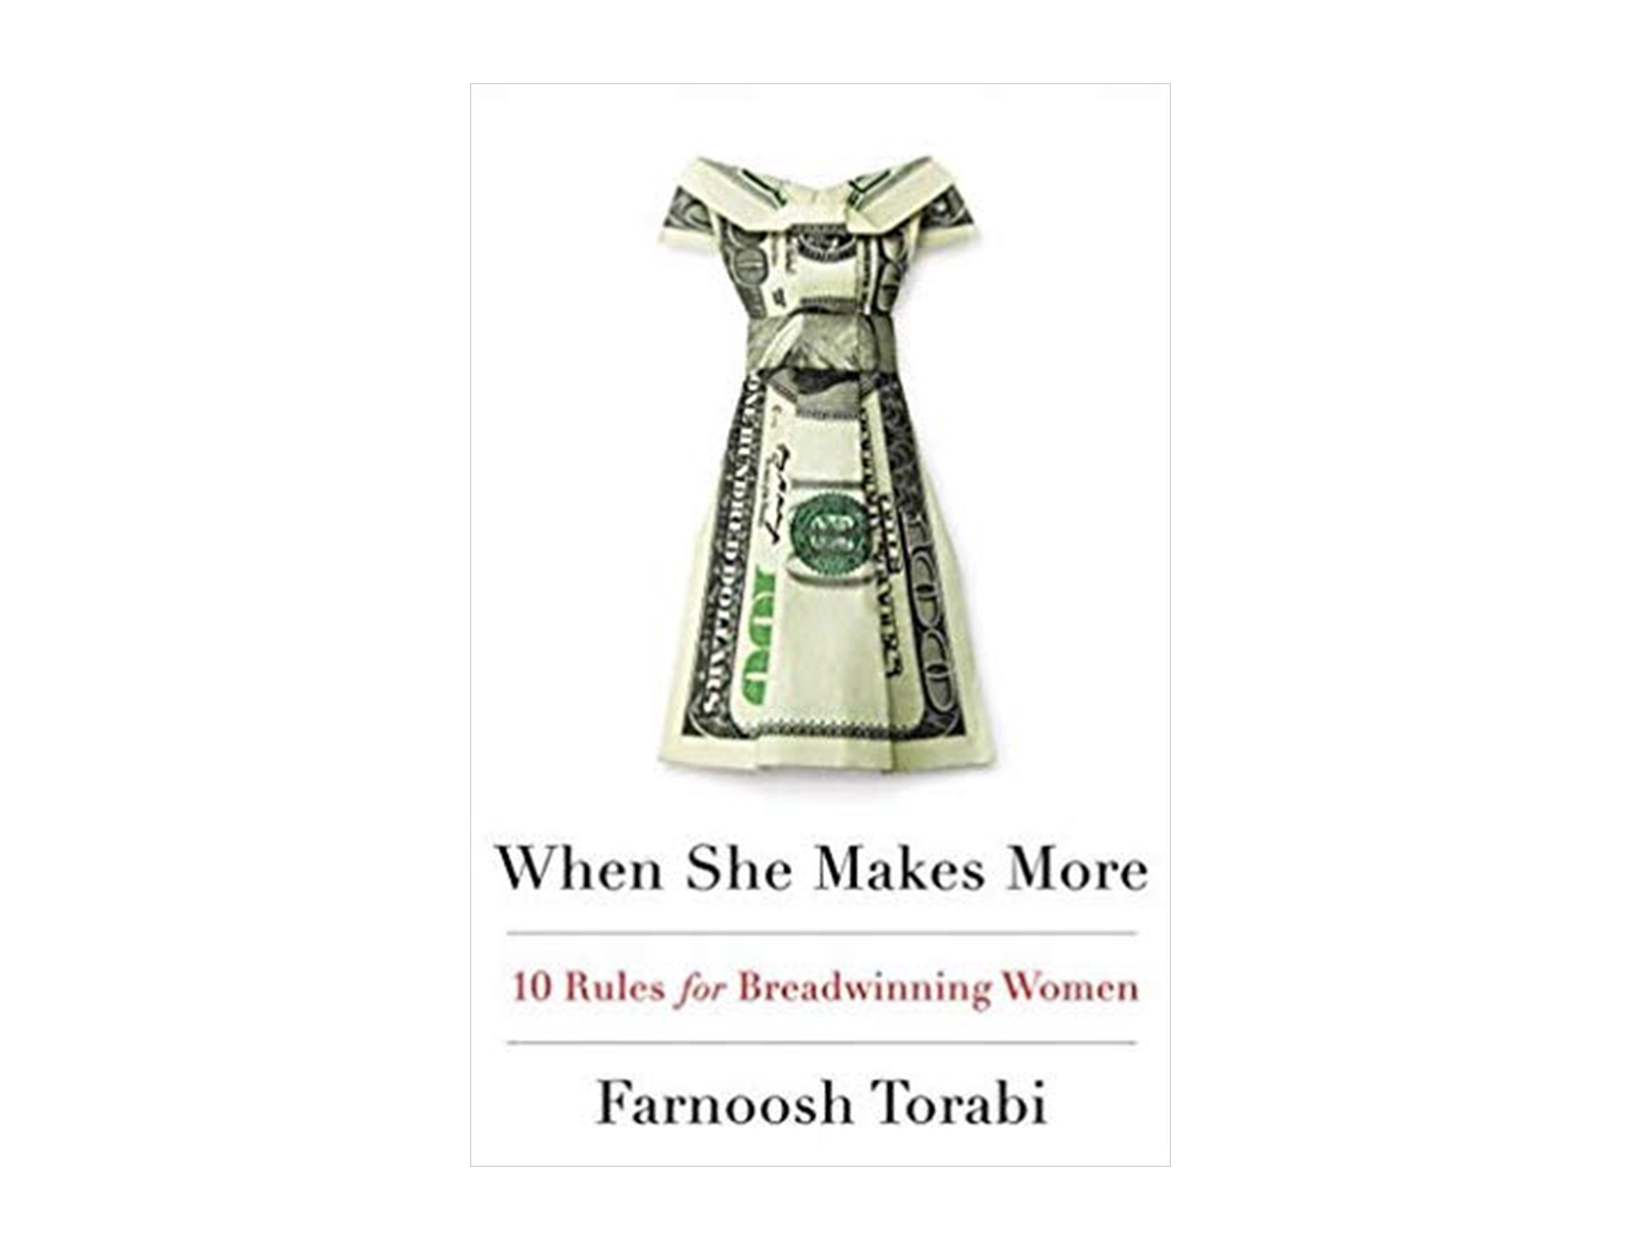 <em>When She Makes More</em> by Farnoosh Torabi